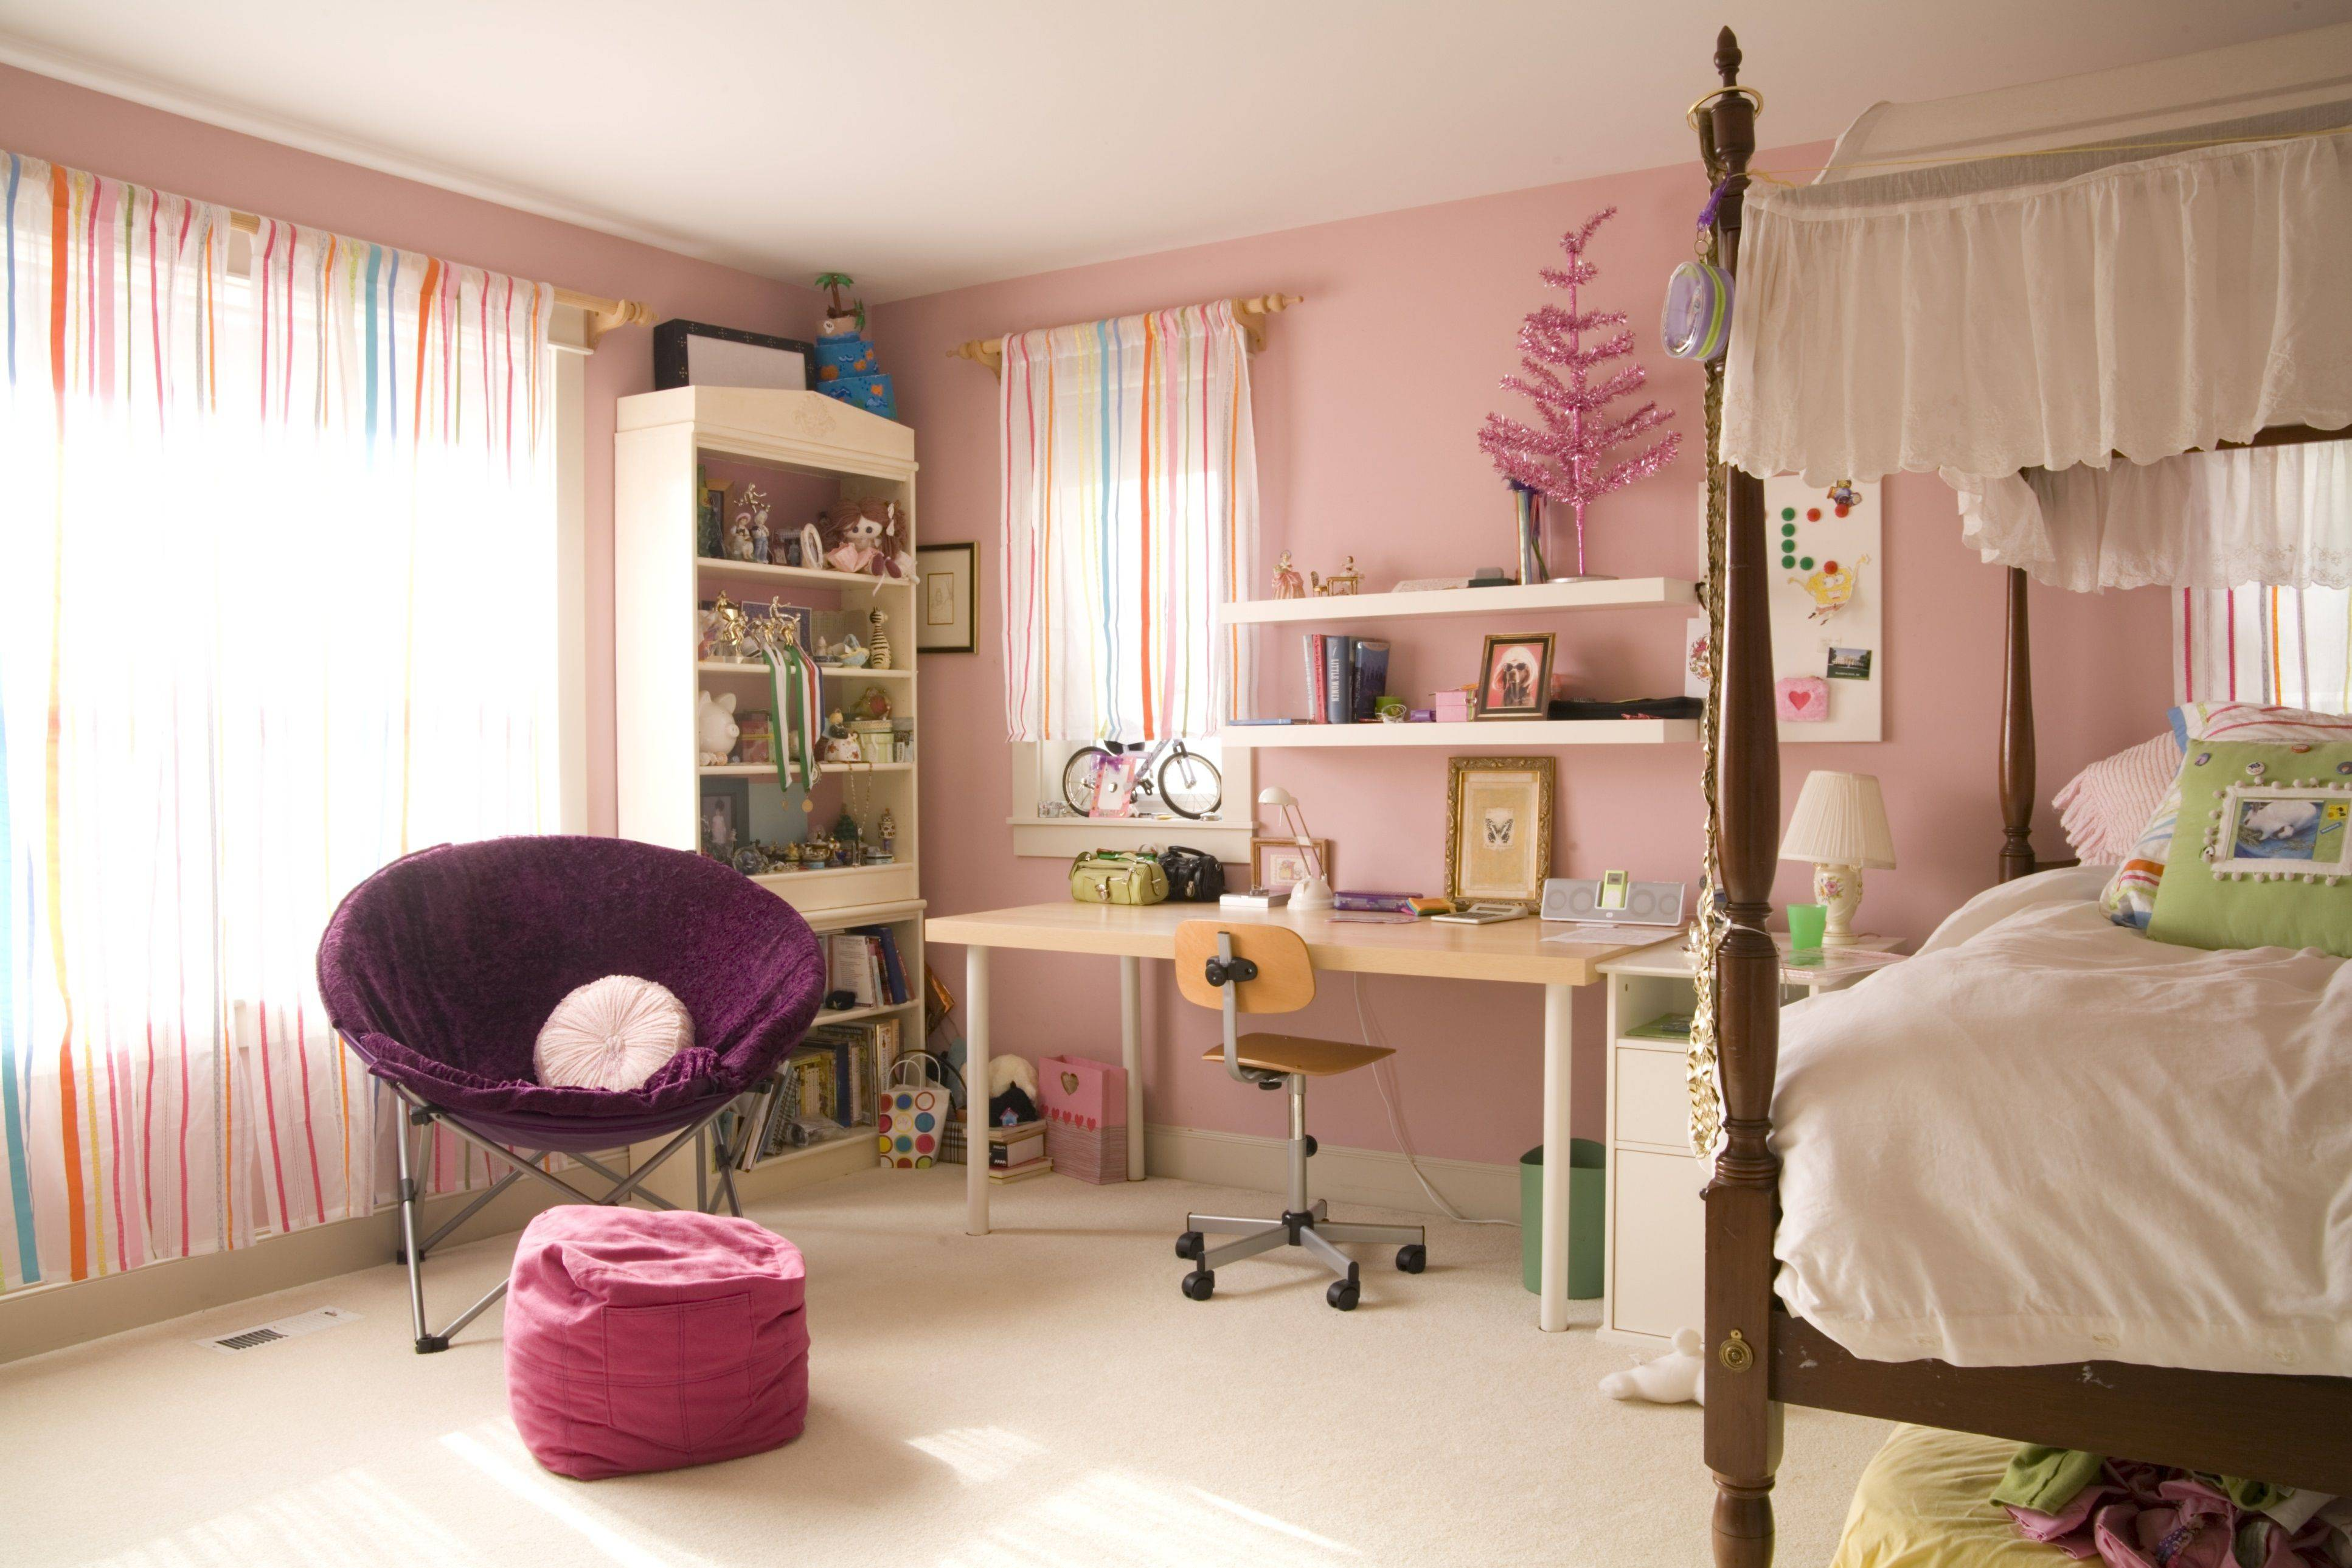 pink kids bedroom 56a08db05f9b58eba4b182d3